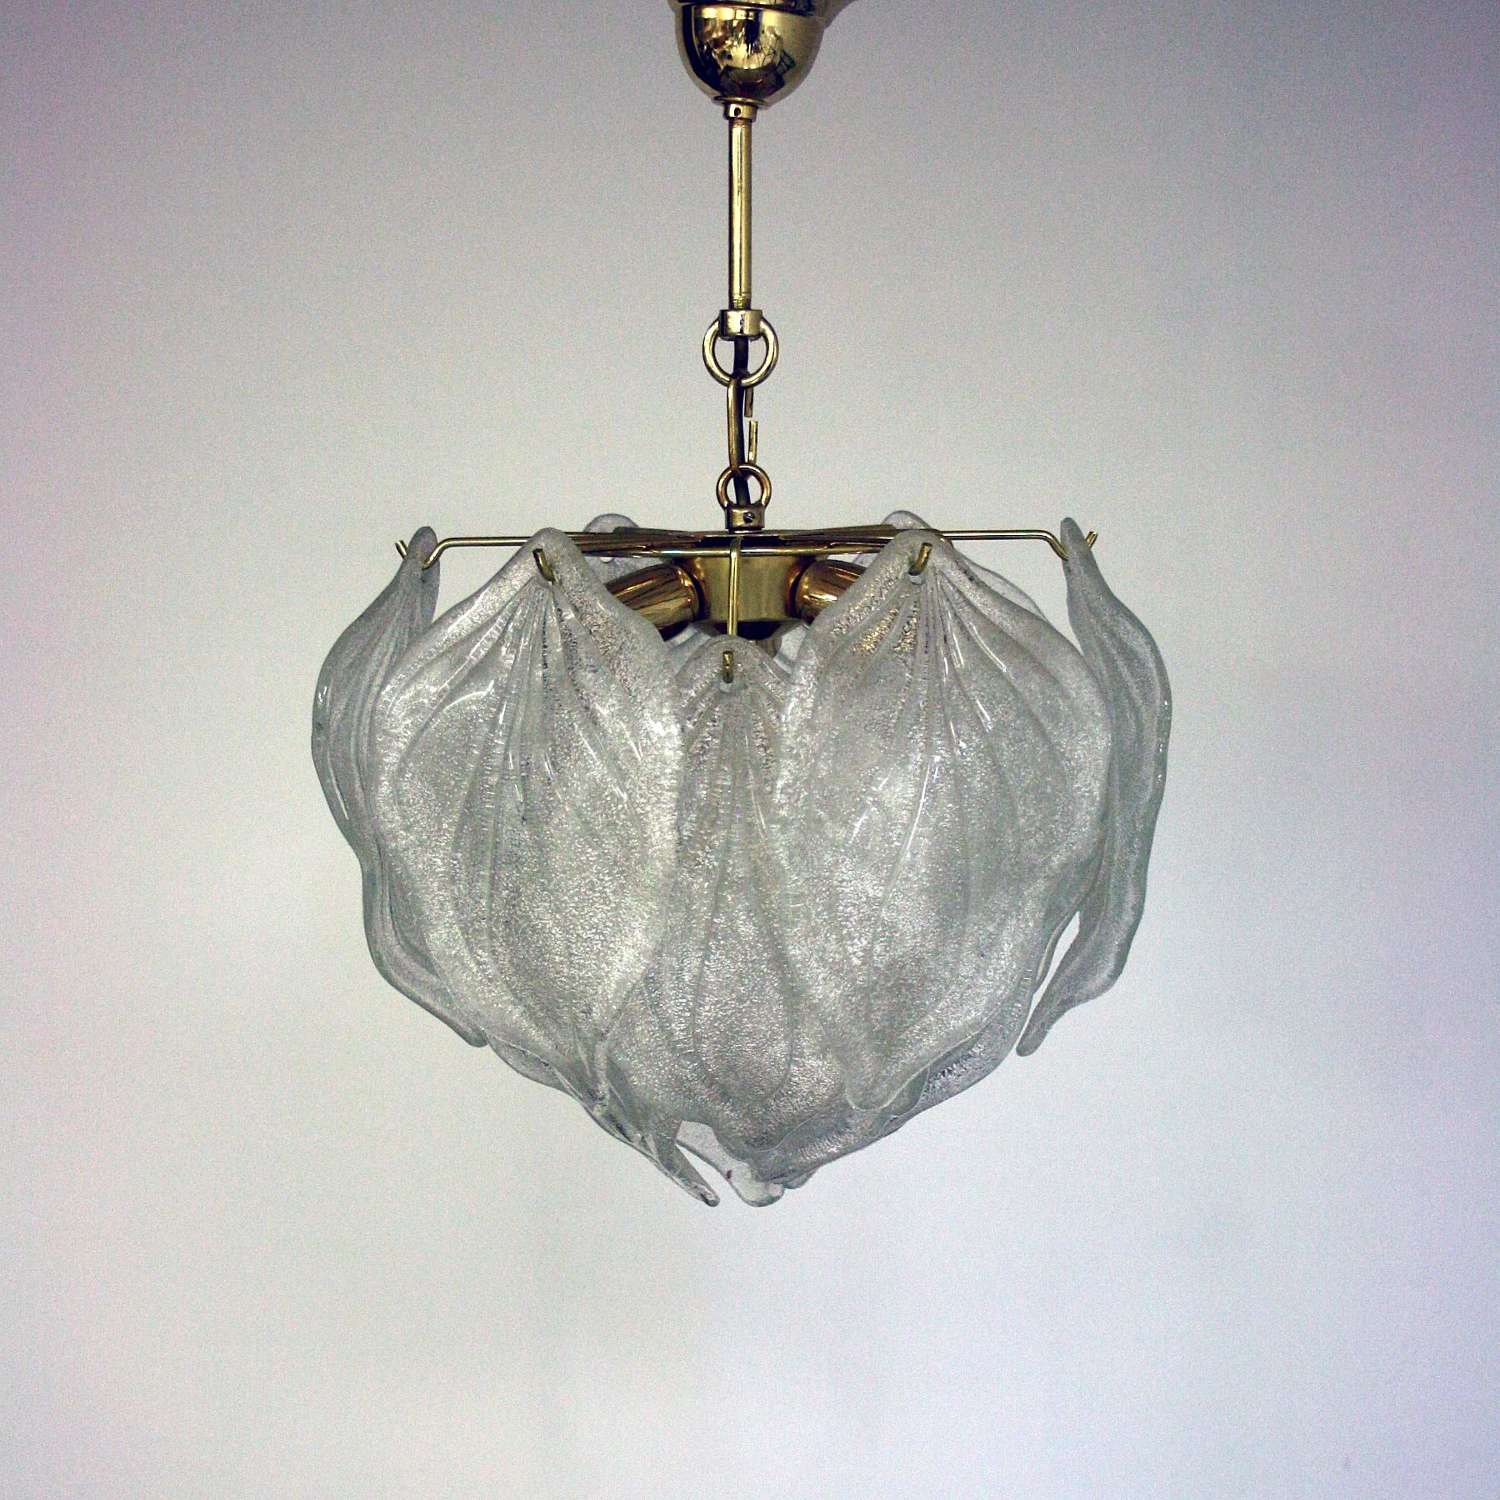 Small elegant Murano Leaf Chandelier